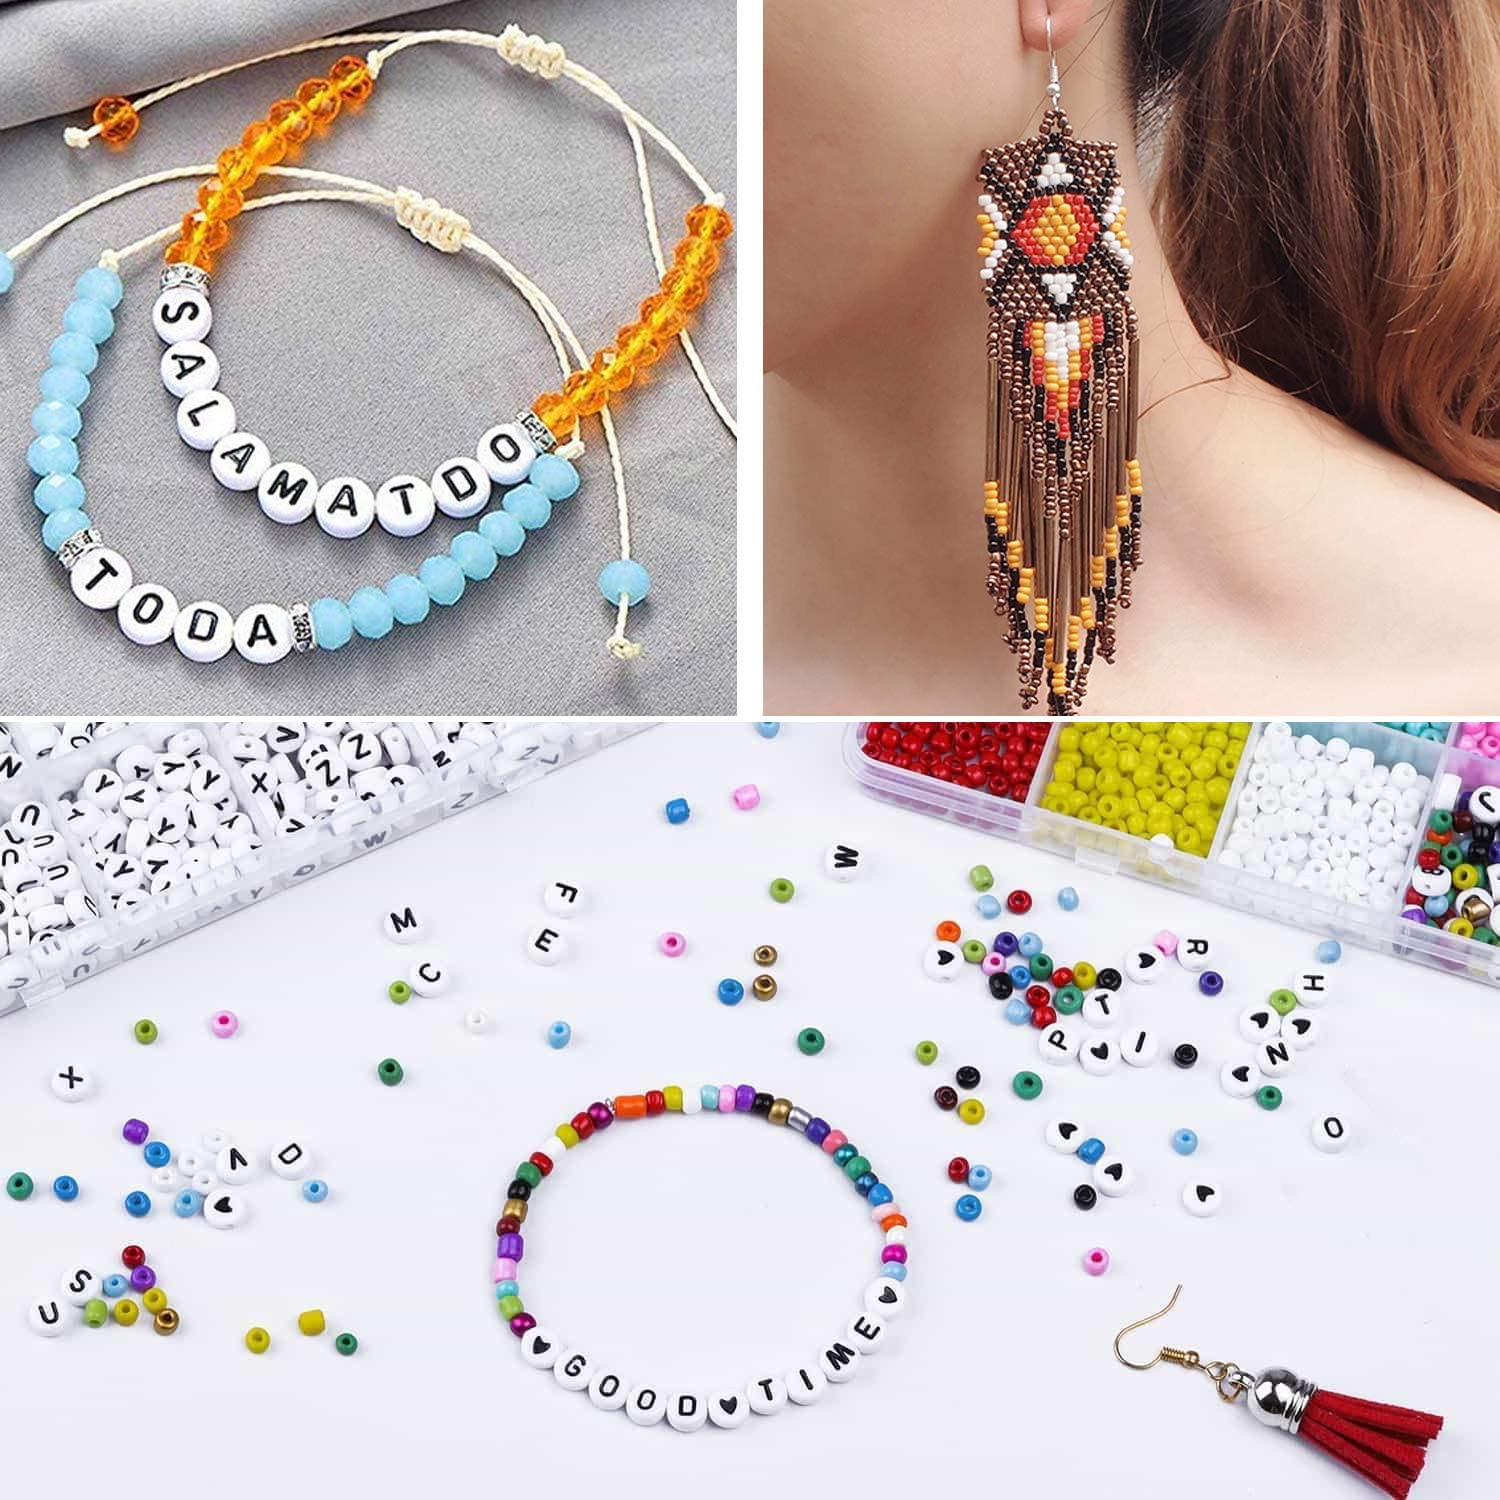 Glass Pony Seed Letter Alphabet DIY Bead with 3 Rolls of Cord for Bracelets Necklaces Key Chains and Jewelry Craft and Art Set Apsung Jewelry Making Kit Beads for Bracelets